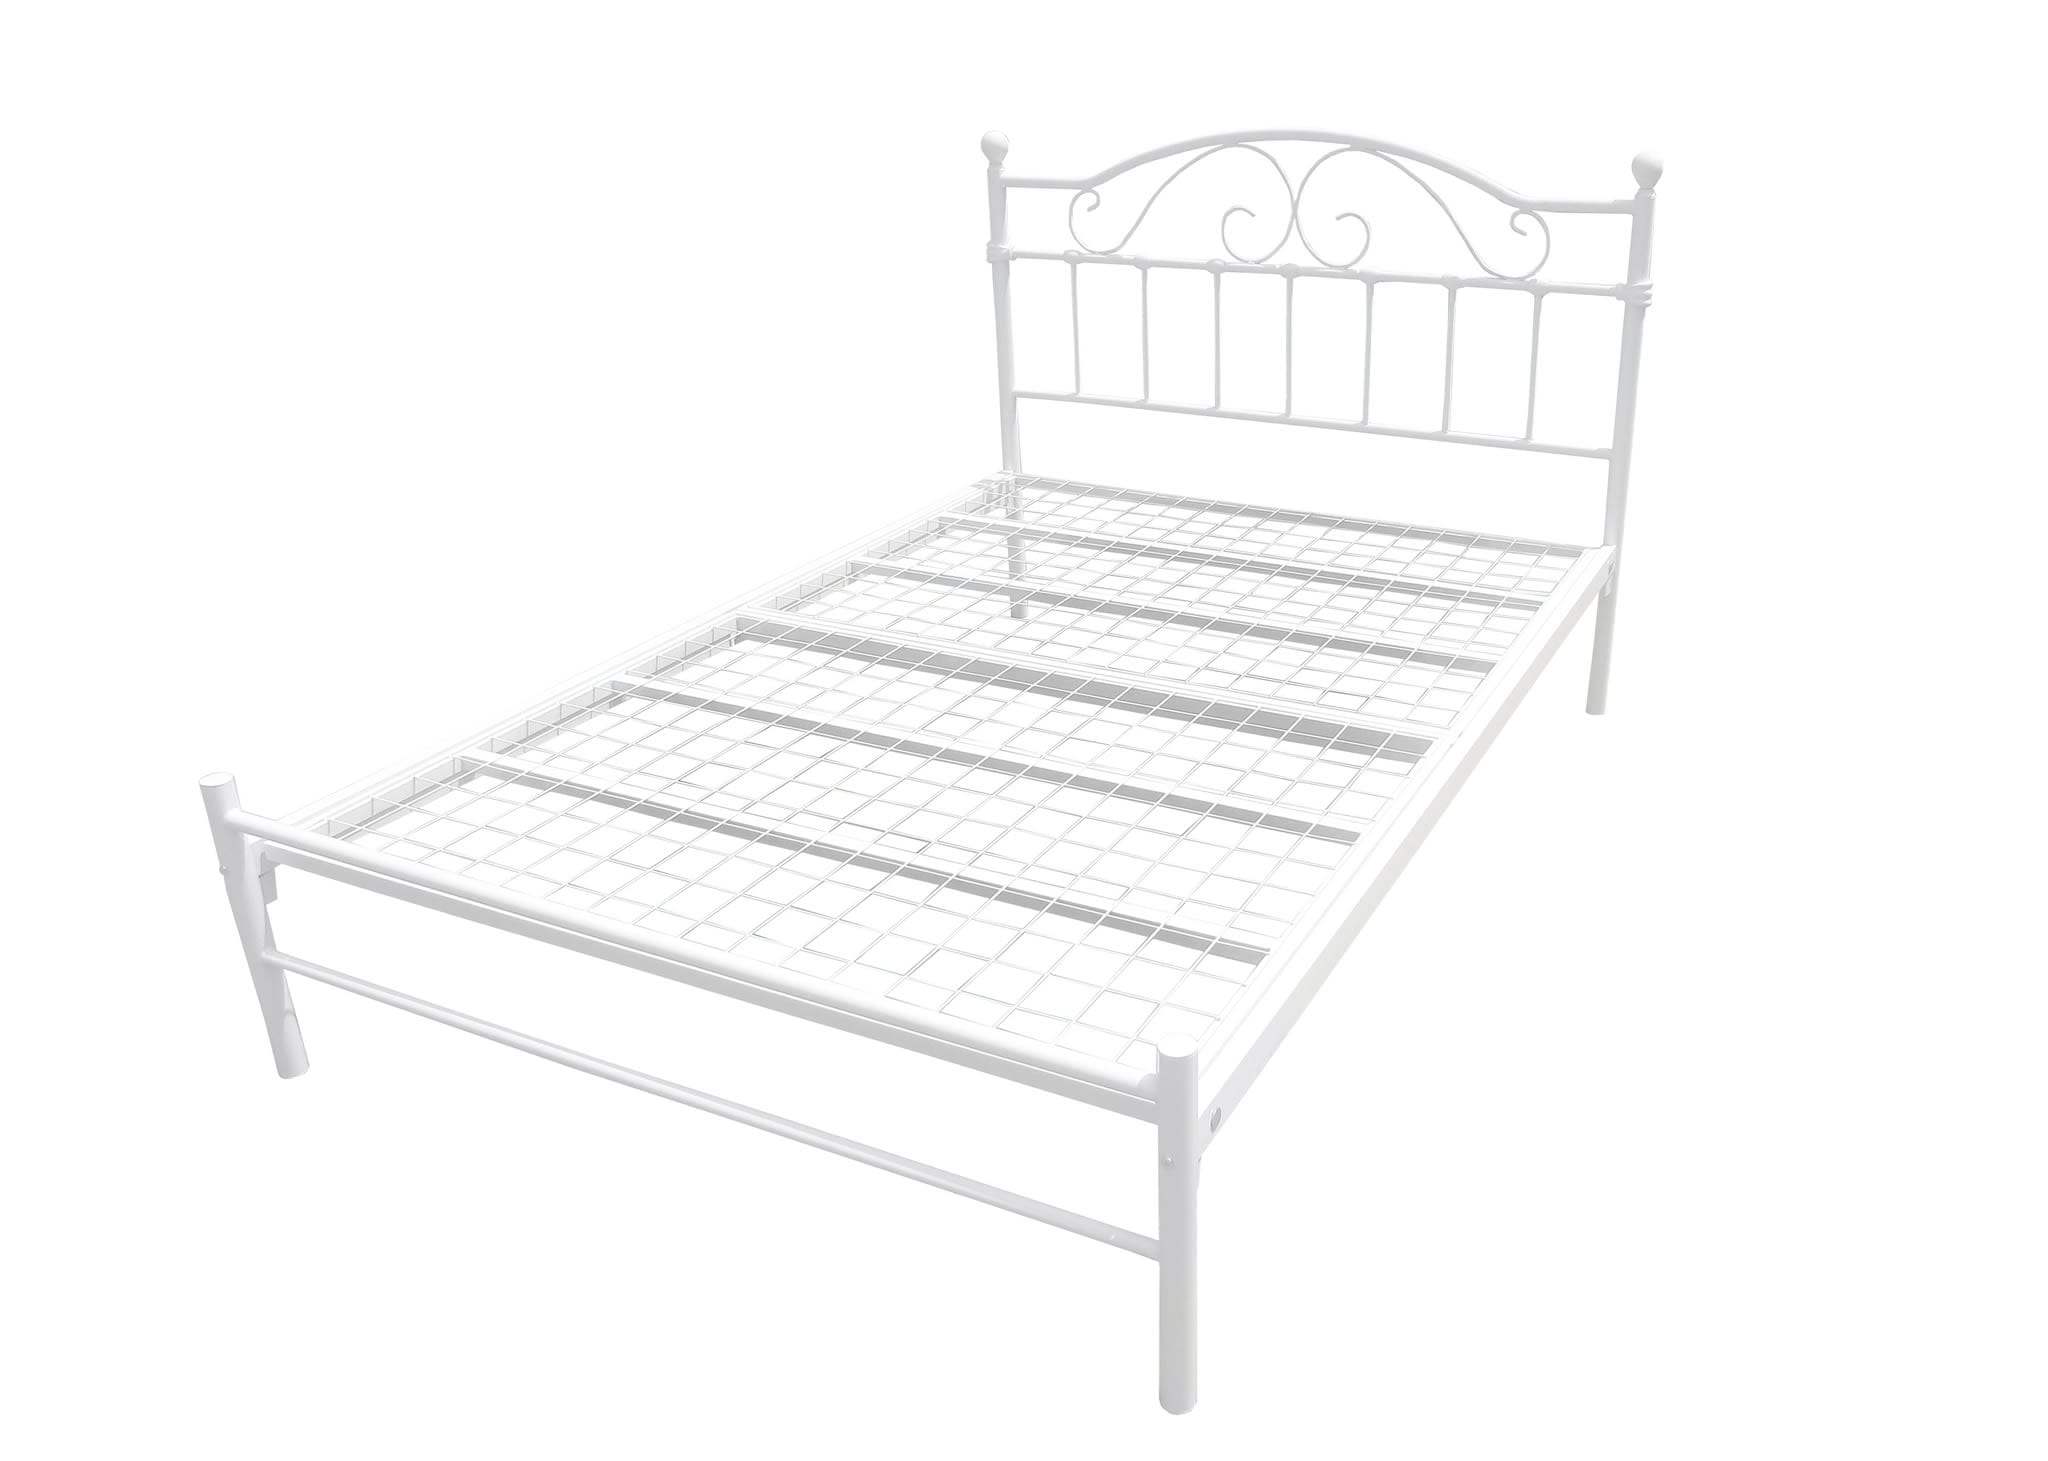 orthopedic sofa bed uk fairfield chair company sofas sussex mesh frame - let us furnish